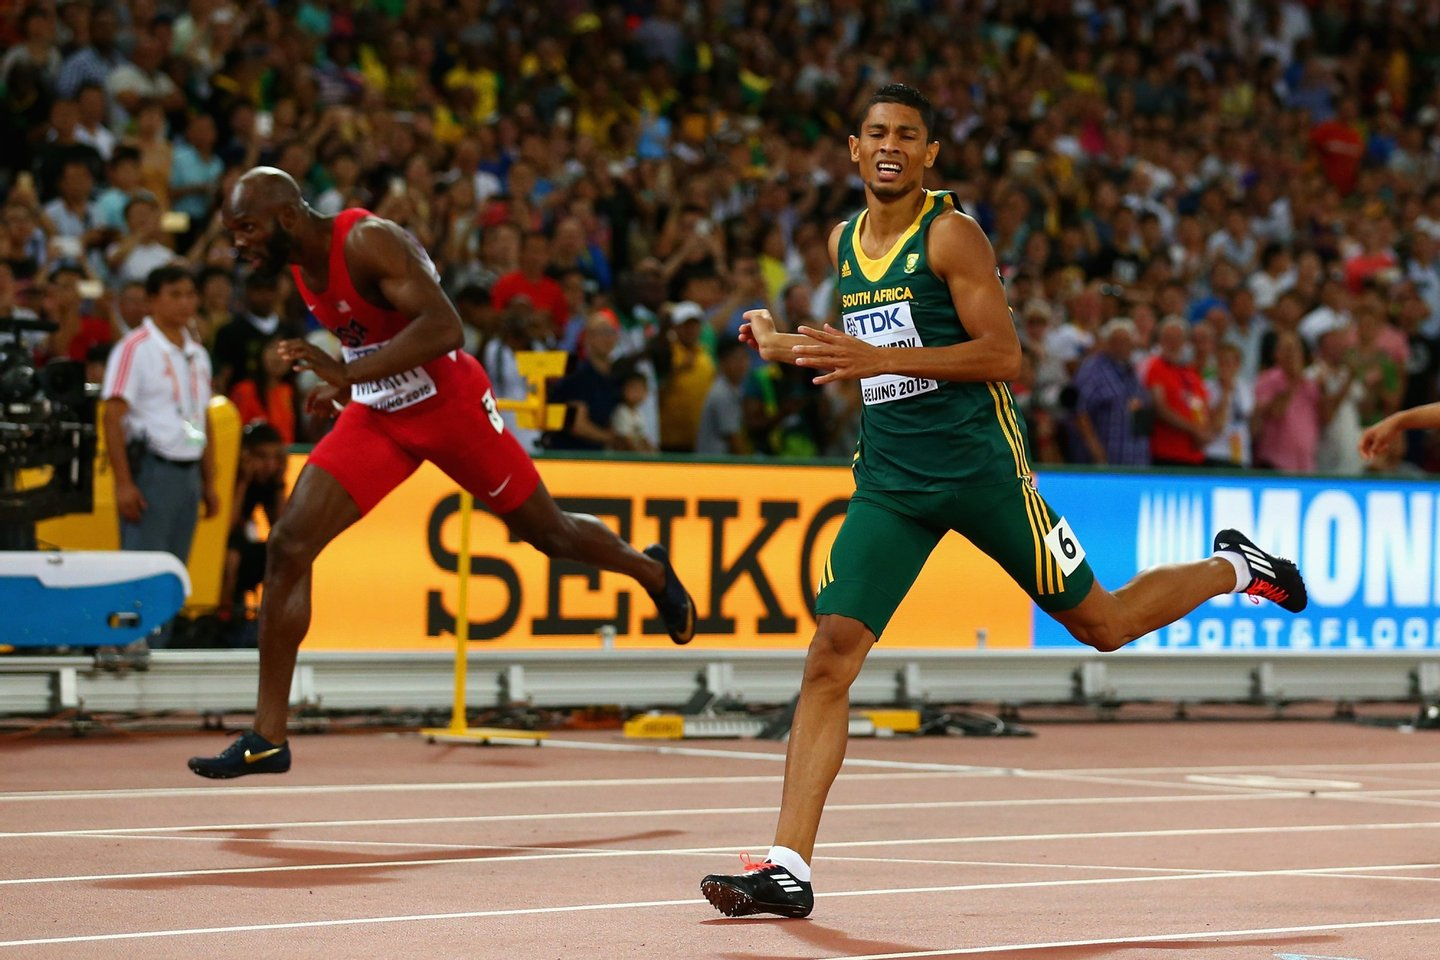 BEIJING, CHINA - AUGUST 26: Wayde Van Niekerk of South Africa (R) crosses the finish line to win gold ahead of Lashawn Merritt of the United States (L) in the Men's 400 metres final during day five of the 15th IAAF World Athletics Championships Beijing 2015 at Beijing National Stadium on August 26, 2015 in Beijing, China. (Photo by Cameron Spencer/Getty Images)